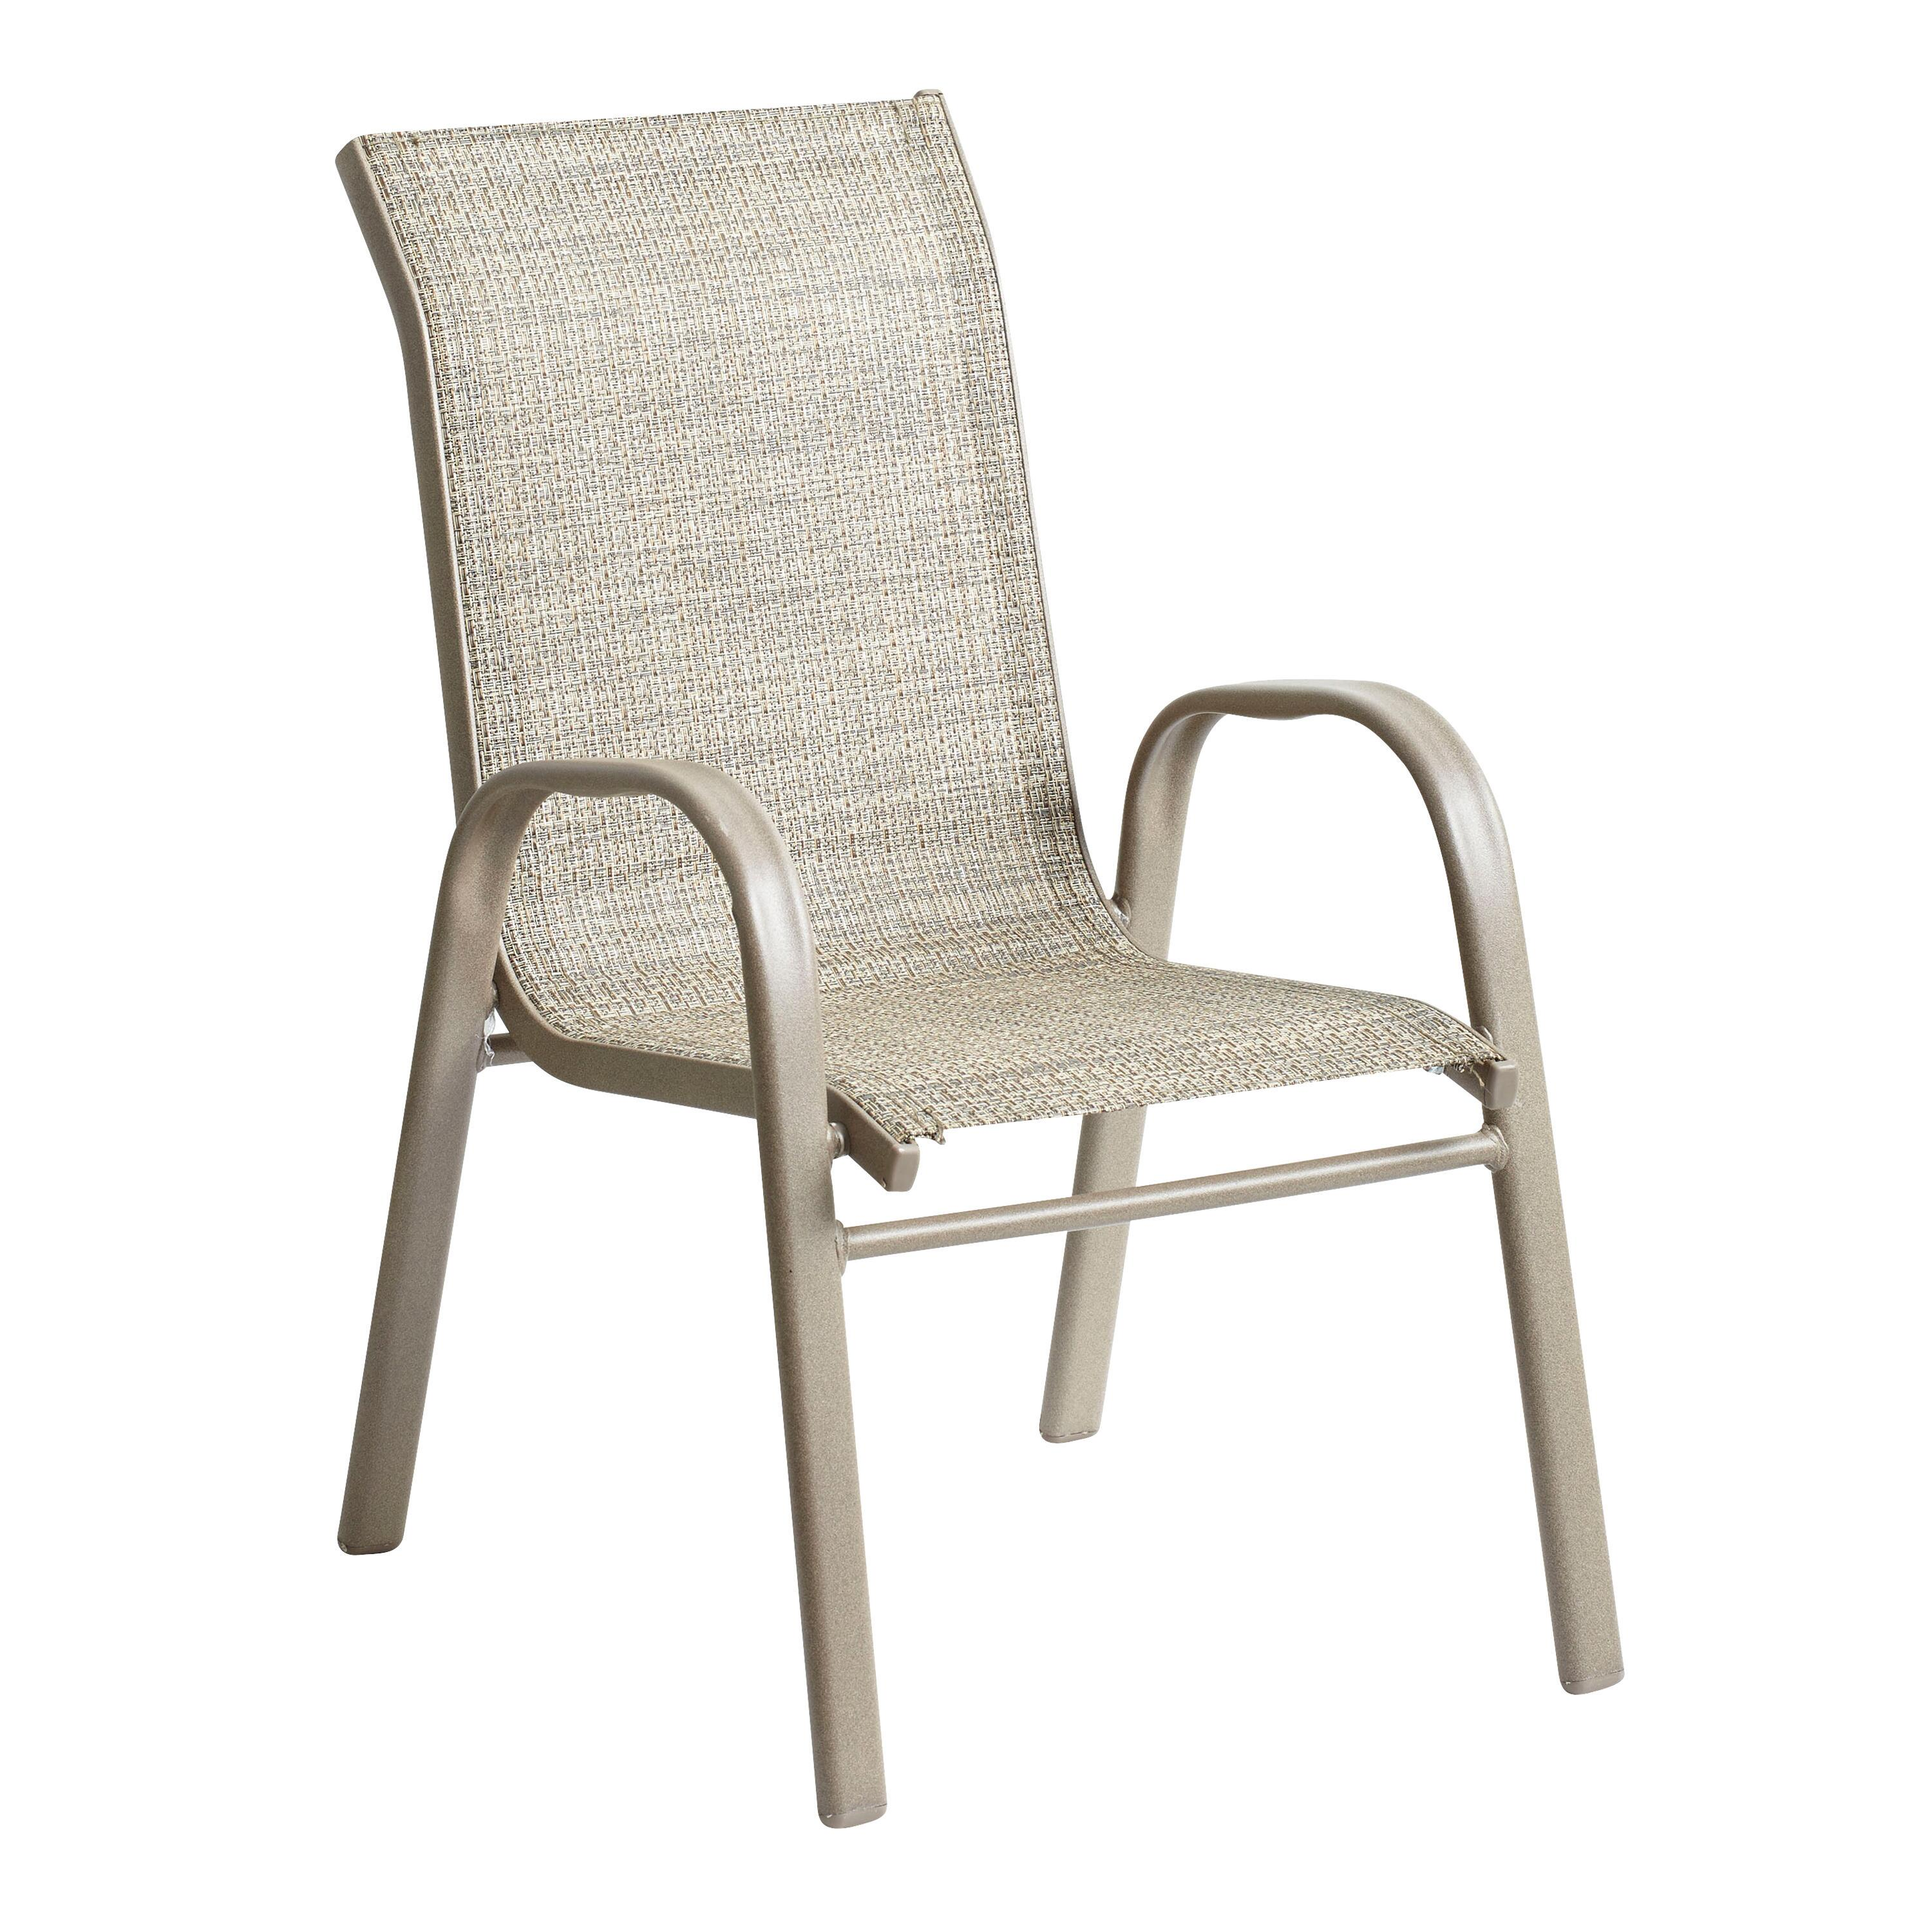 child size patio chair